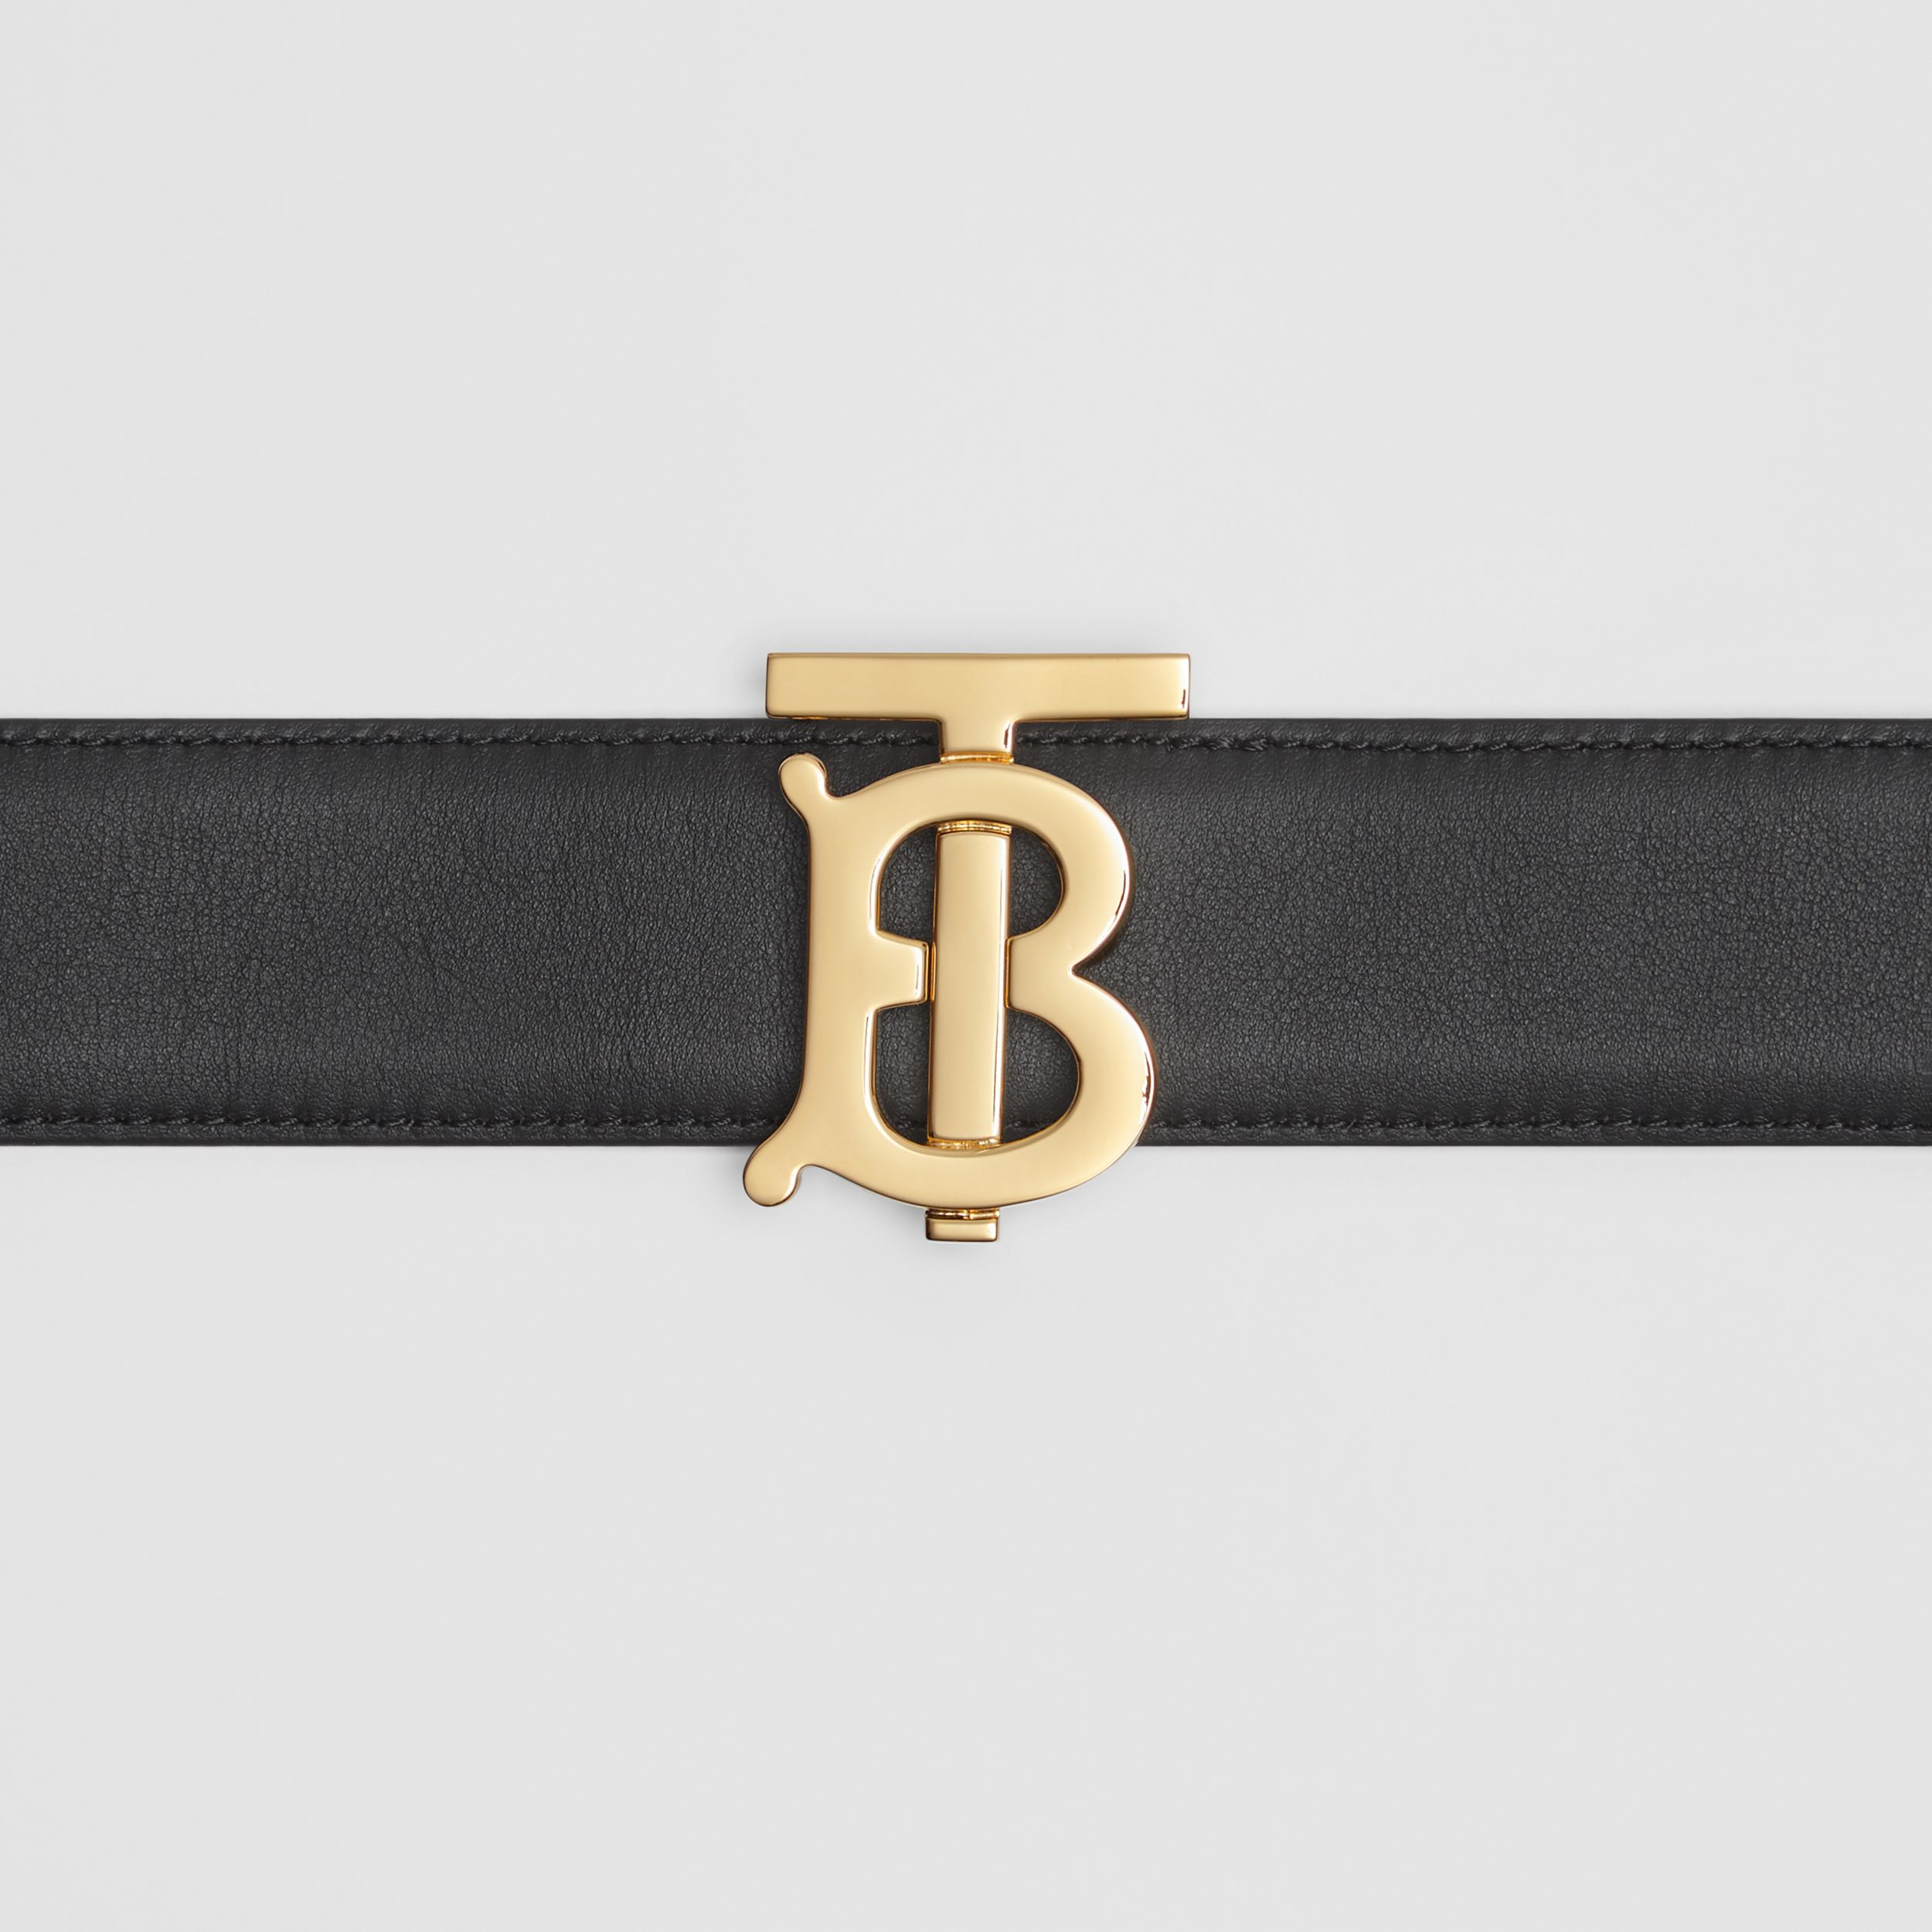 Reversible Monogram Motif Leather Belt in Black/malt Brown - Women | Burberry - 2